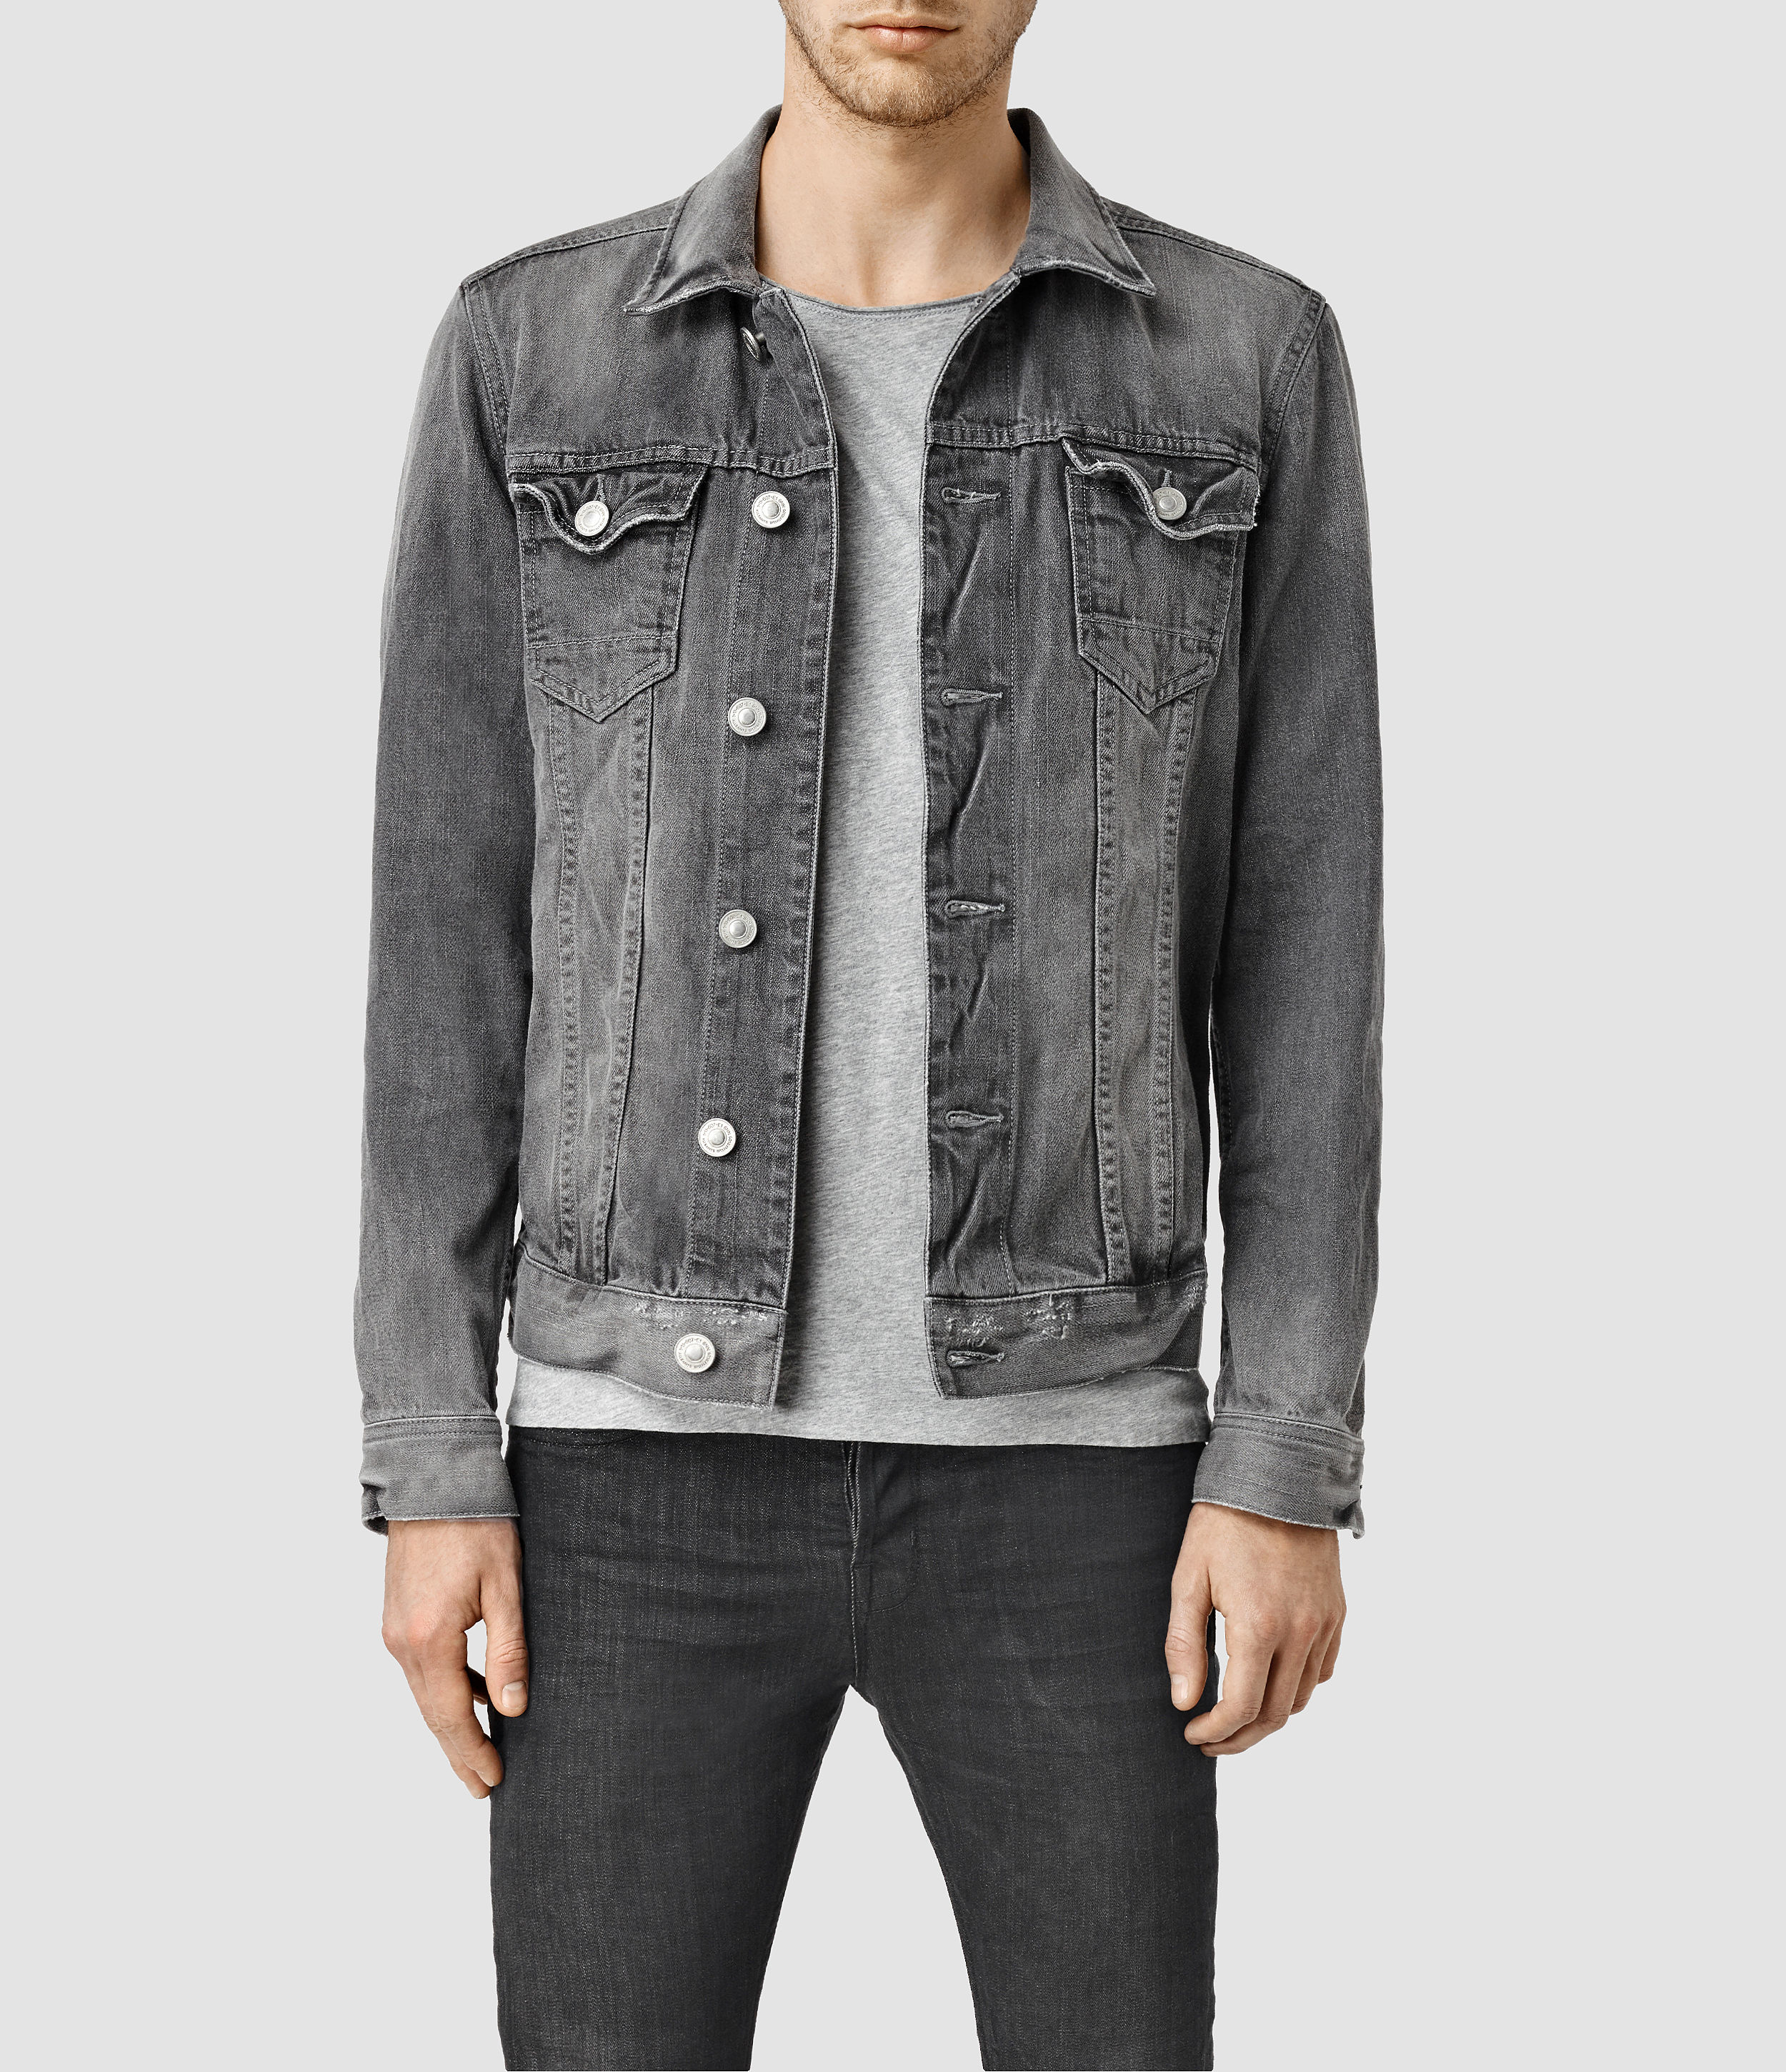 Discover the range of men's denim jackets from ASOS. Shop from a variety of colors and styles, from vintage to oversized denim jackets. Shop now at ASOS. ASOS DESIGN skinny denim jacket in gray. $ ASOS DESIGN Plus oversized denim jacket with back print. $ ASOS DESIGN Plus skinny western denim jacket in black.